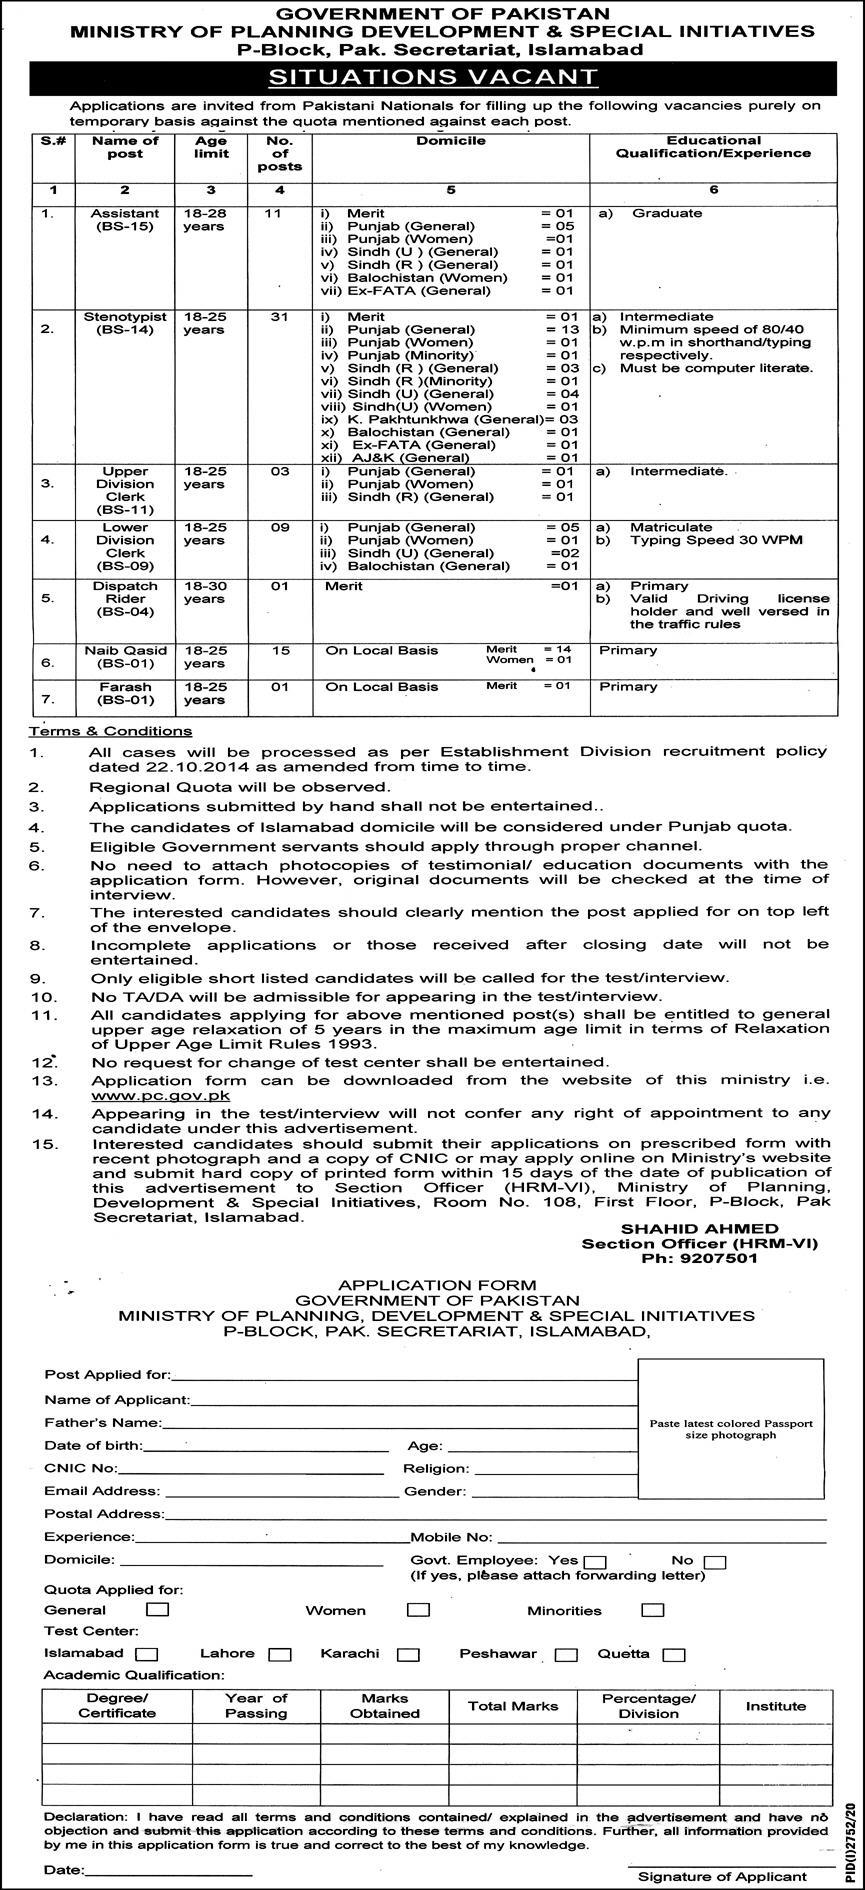 New Govt Jobs in Pakistan - Ministry of Planning Development & Special Initiatives Latest Jobs For Male and Female - Download Job Application Form Jobs 2021